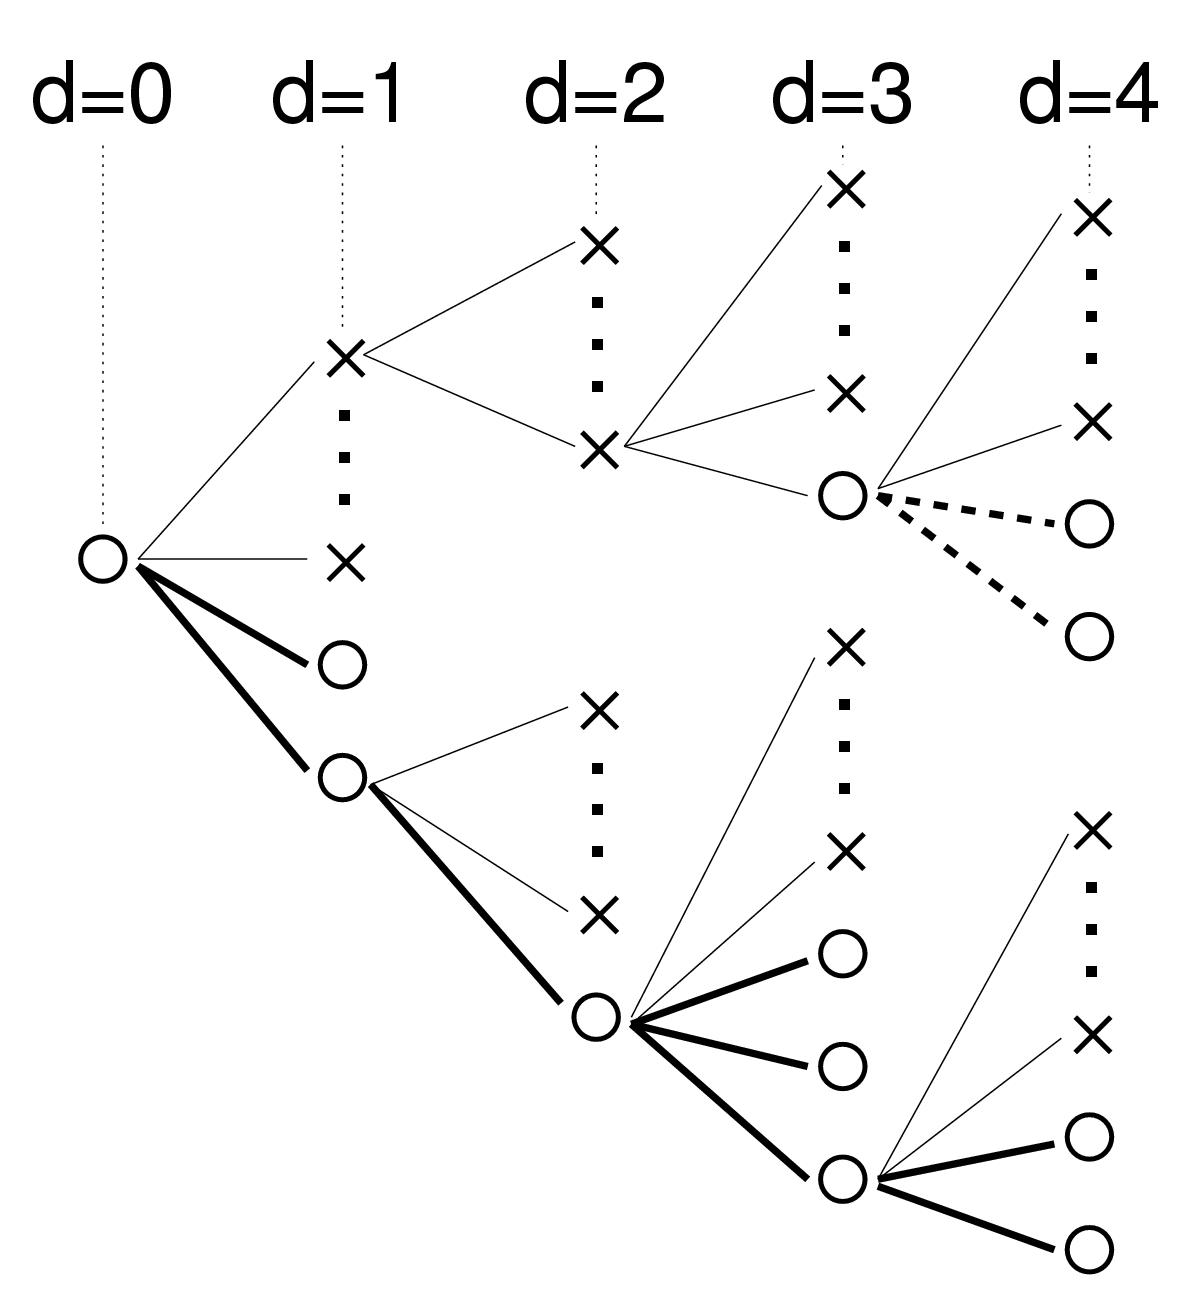 http://static-content.springer.com/image/art%3A10.1186%2F1471-2148-3-3/MediaObjects/12862_2002_Article_37_Fig2_HTML.jpg